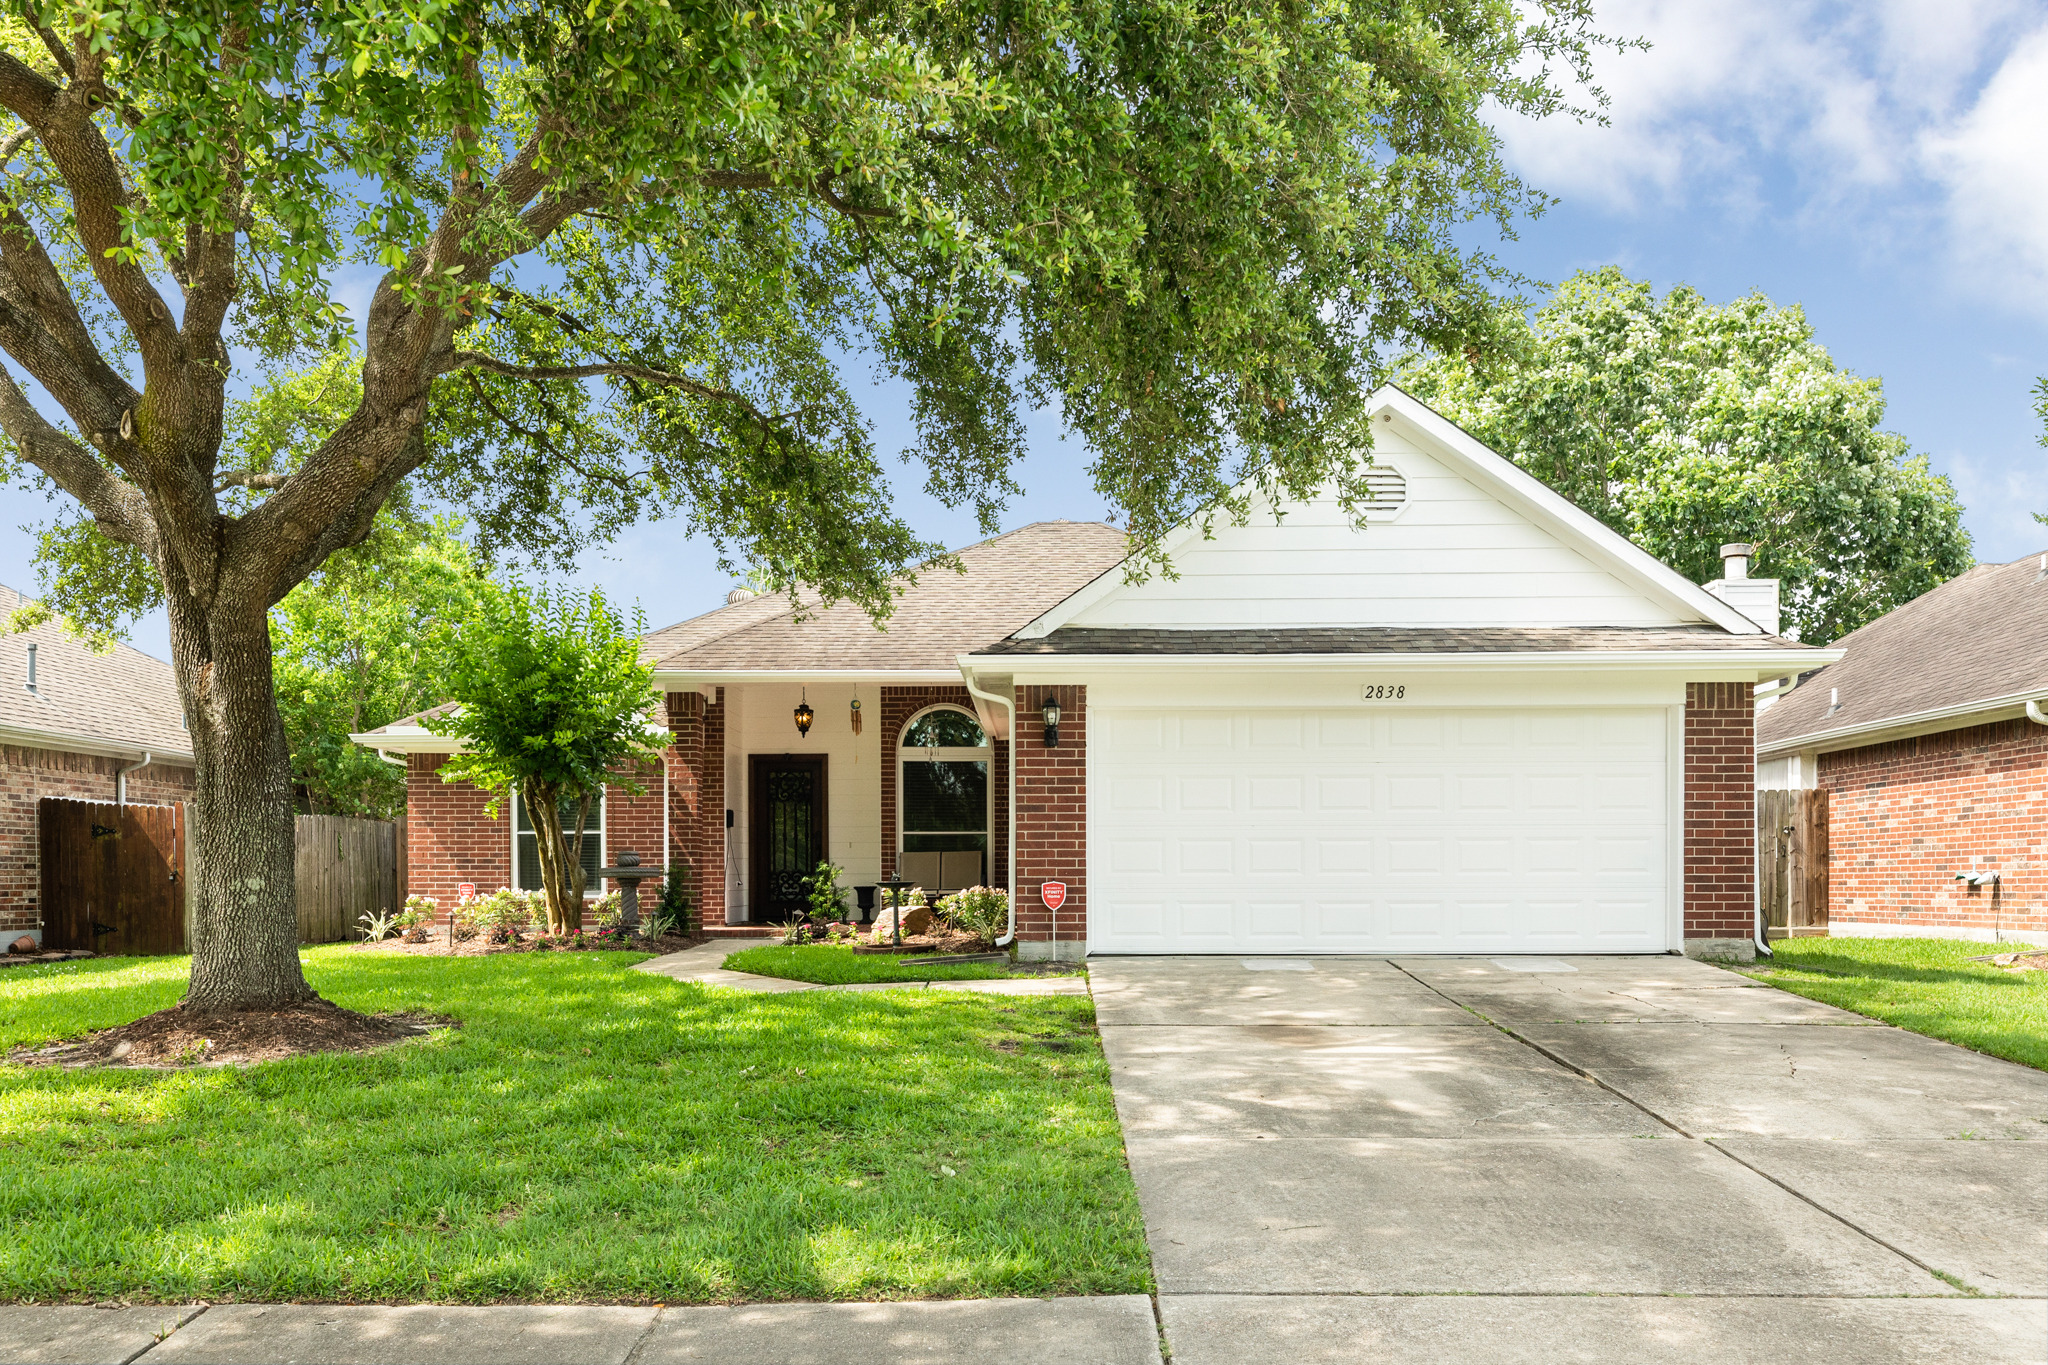 Copy of 2838 Rolling Fog Drive in Friendswood, Texas